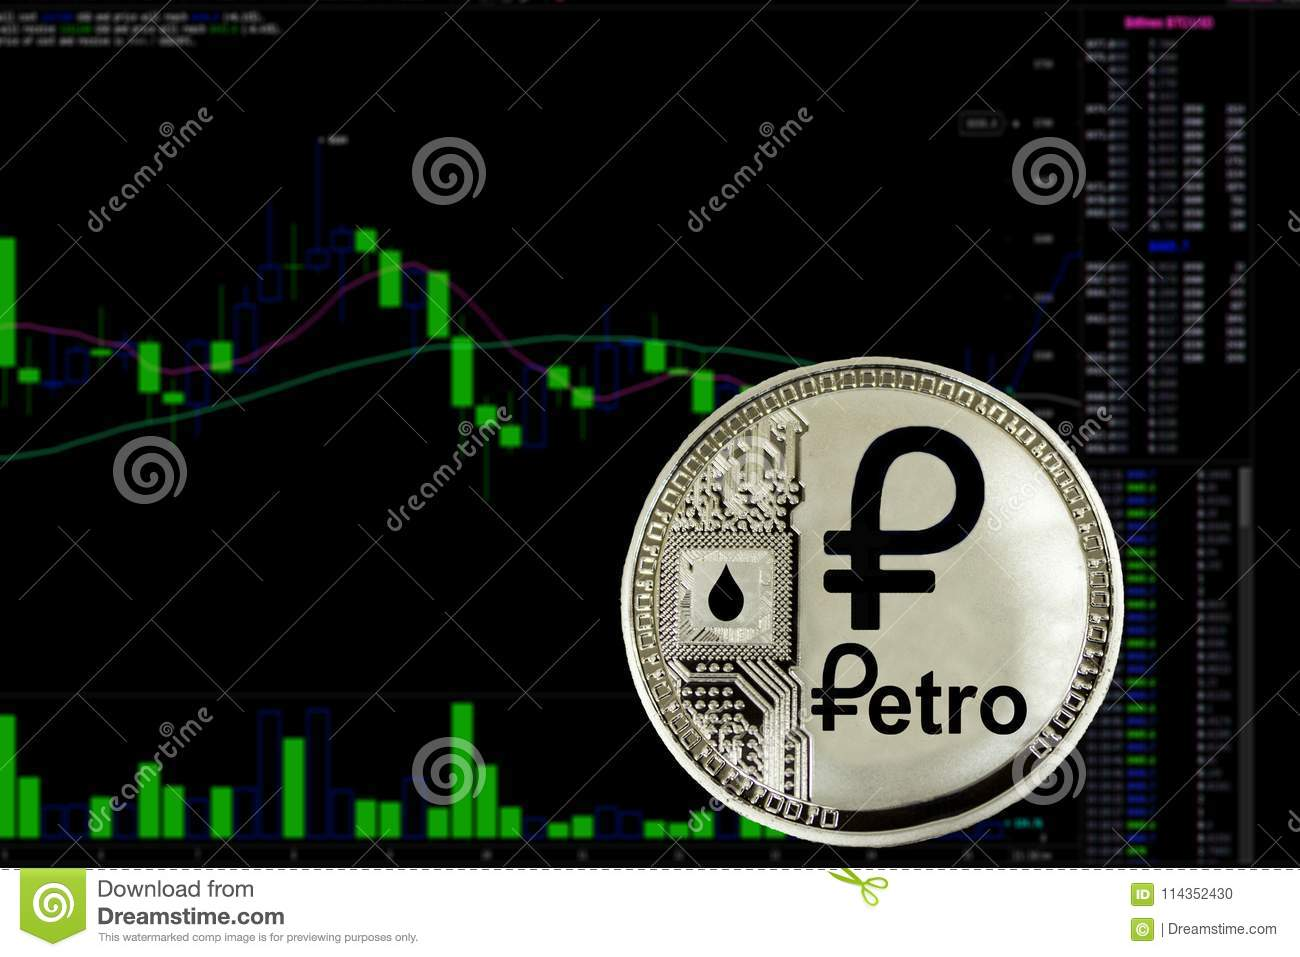 Myntcryptocurrency Petro